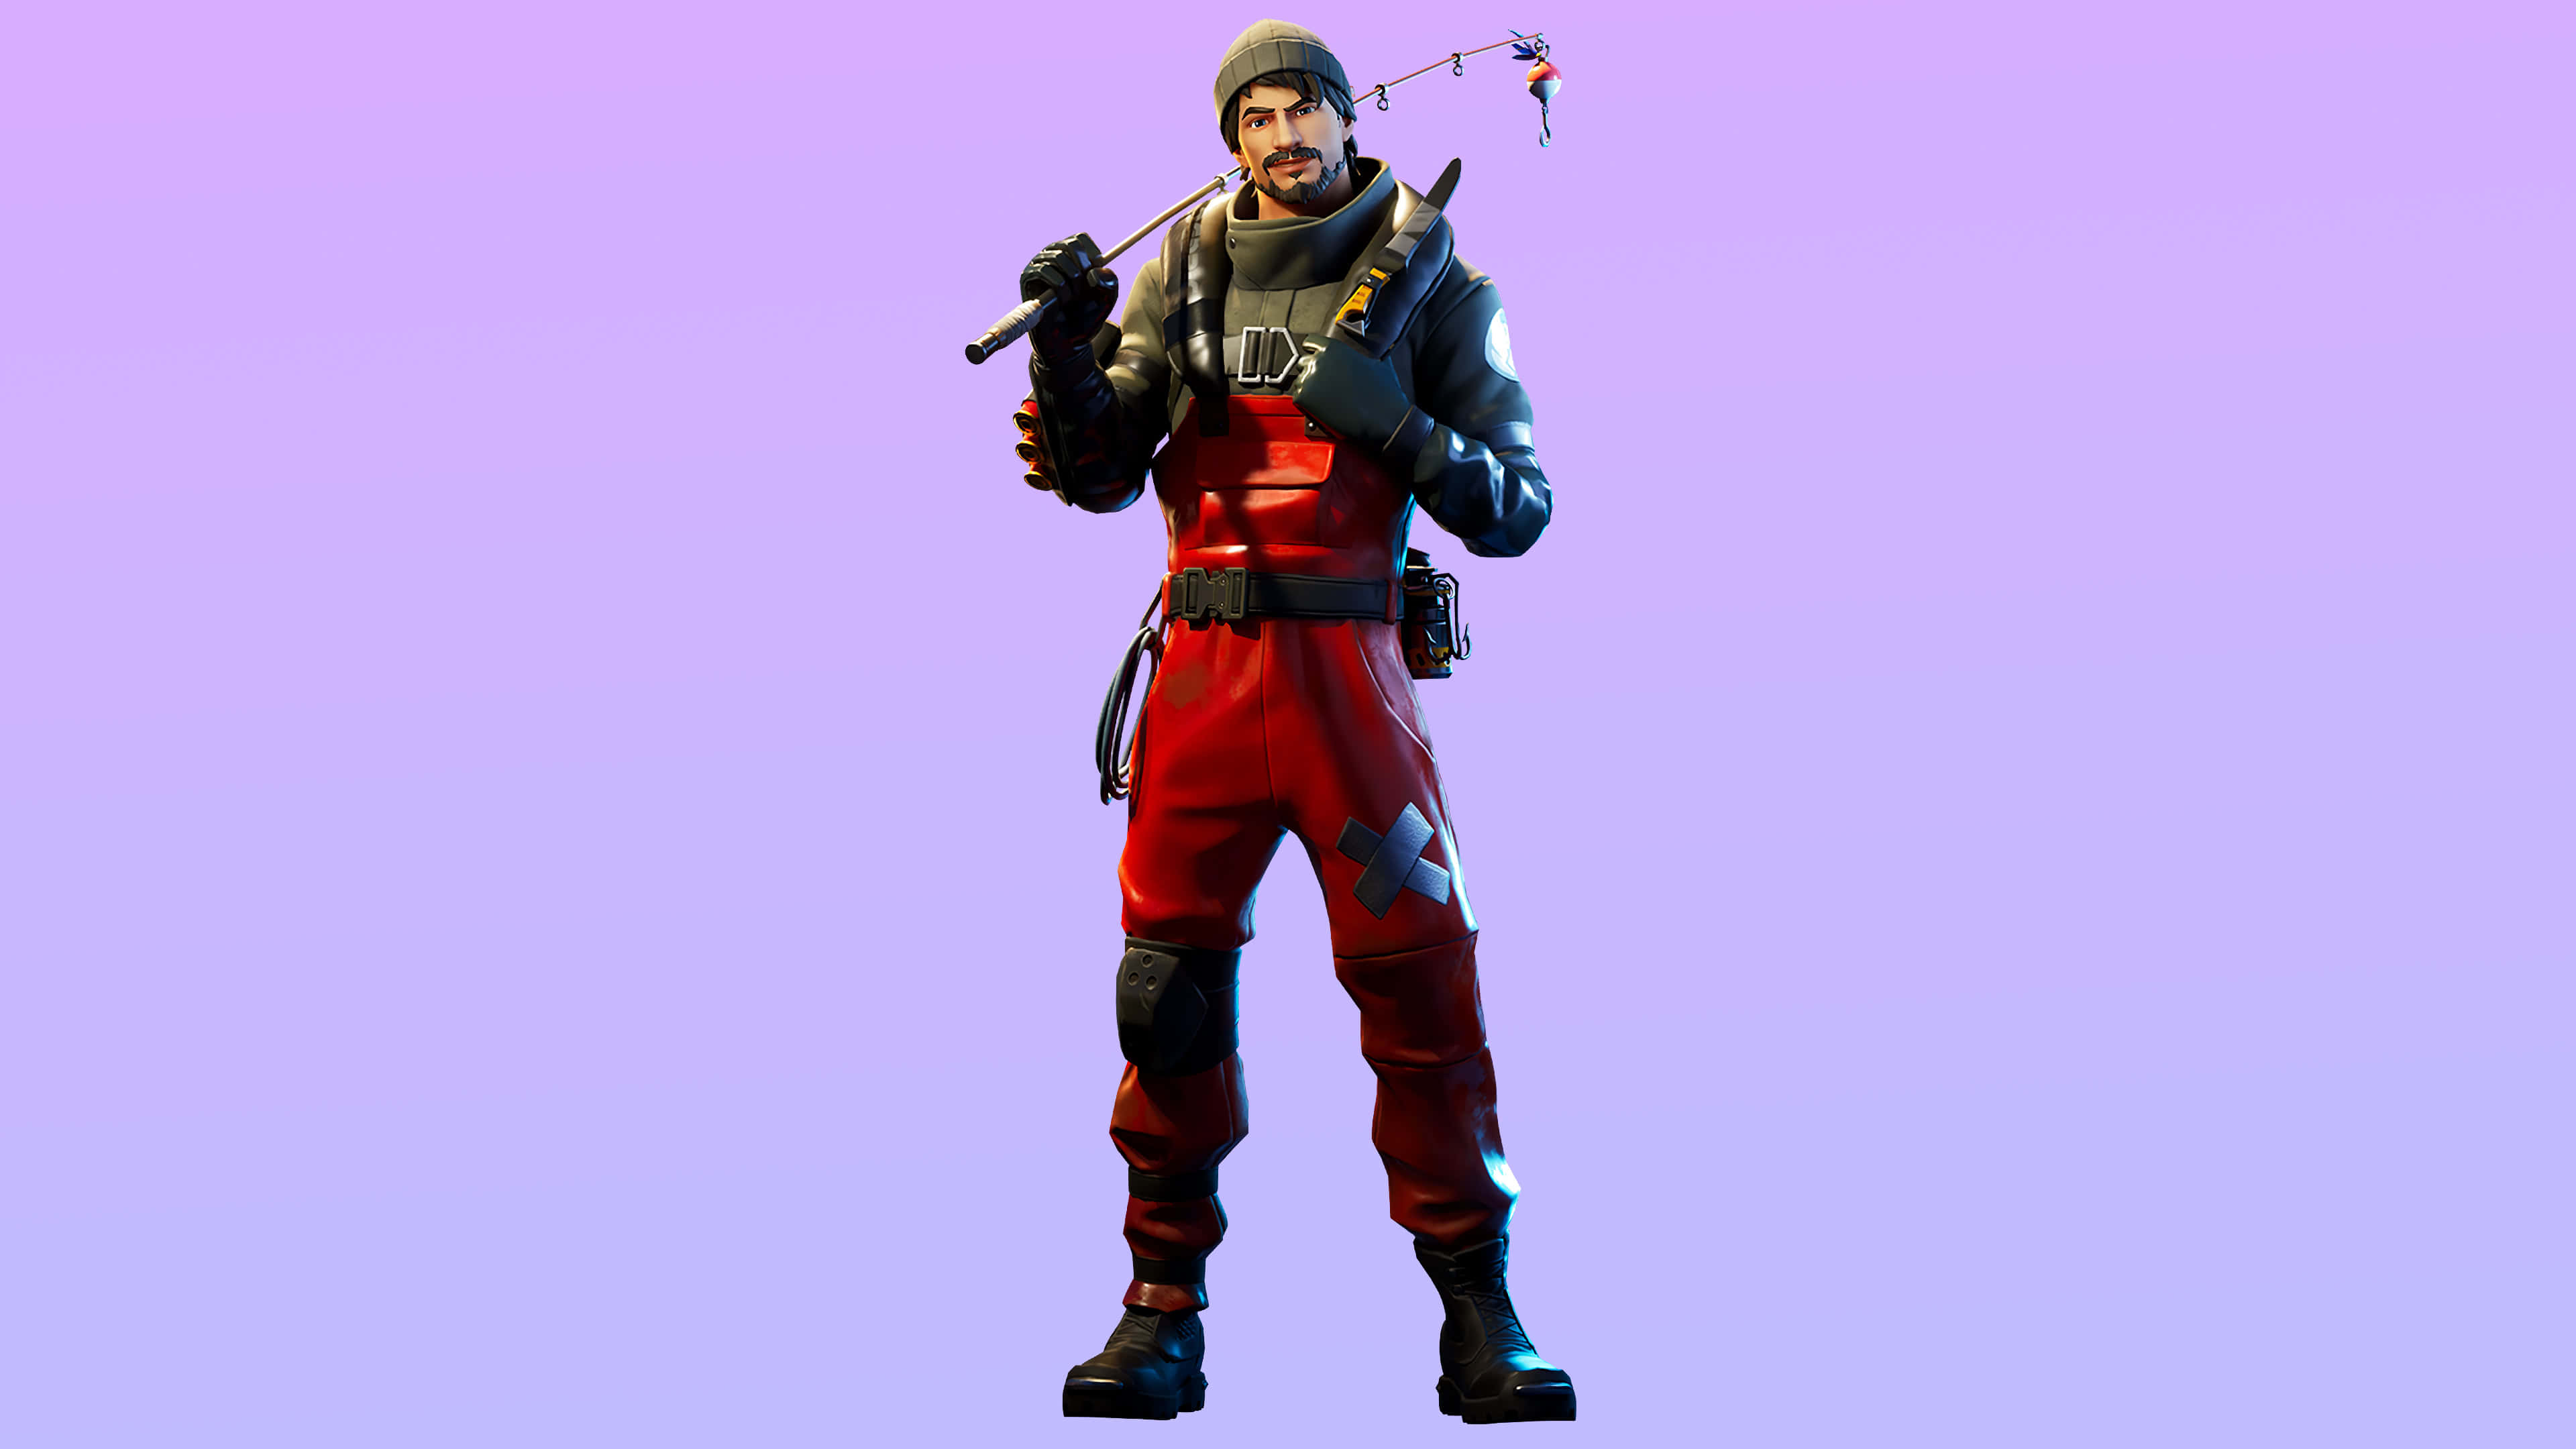 fortnite open water set turk vs riptide skin outfit uhd 4k wallpaper